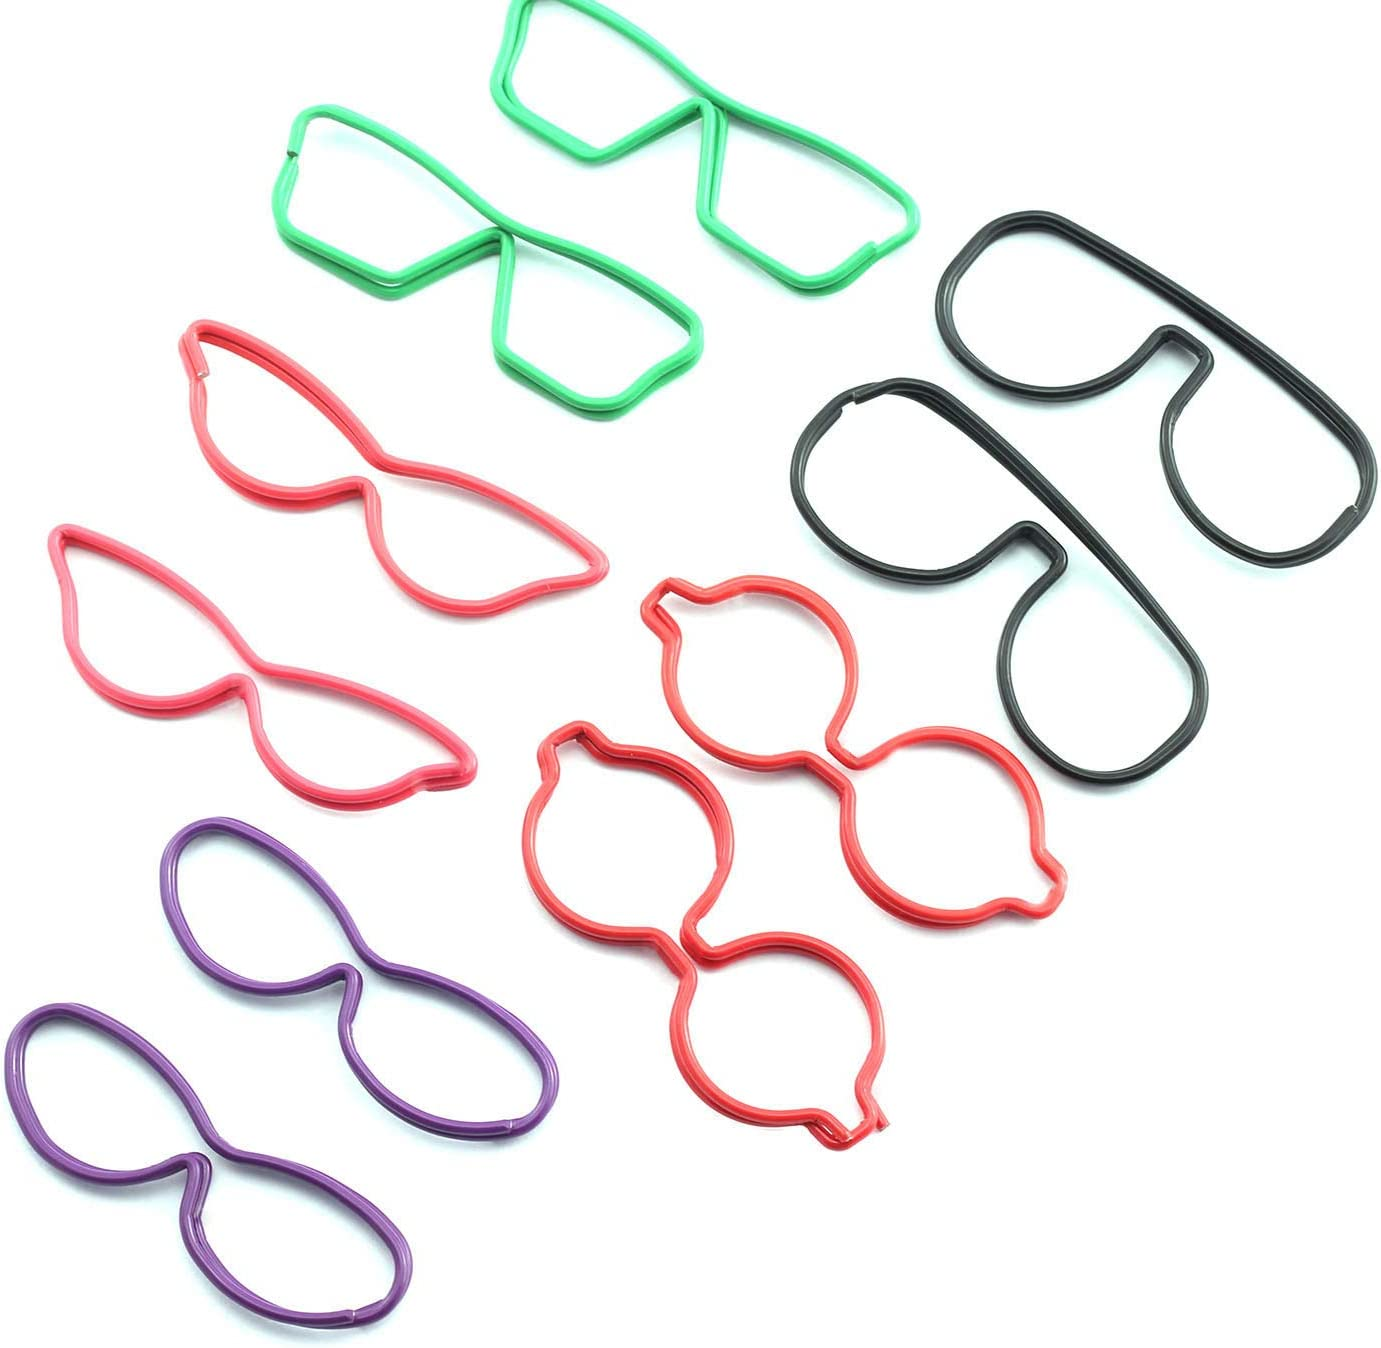 RuiLing 30PCS Glasses Shape Paper Max 54% OFF Challenge the lowest price of Japan Metal Binder Wire Multi-P Clip